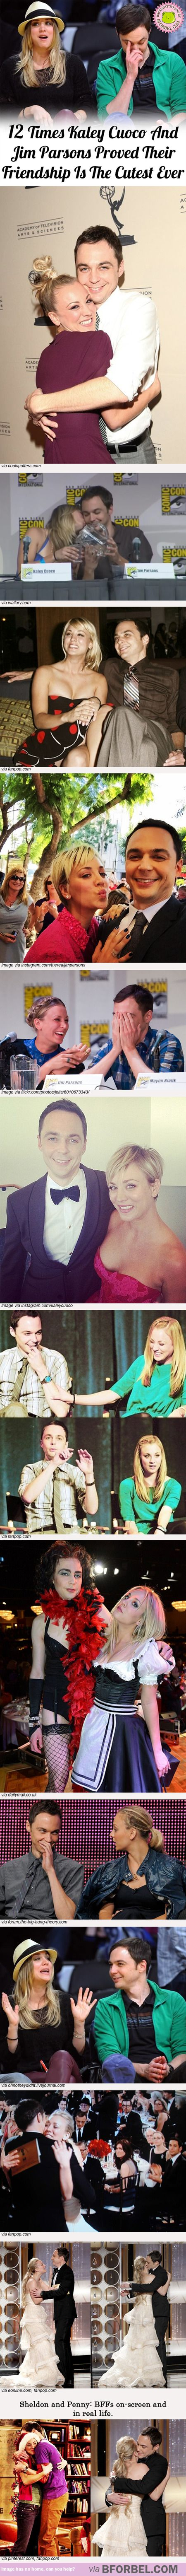 12 Time Kaley Cuoco And Jim Parsons Proved Their Friendship Is The Cutest Ever...